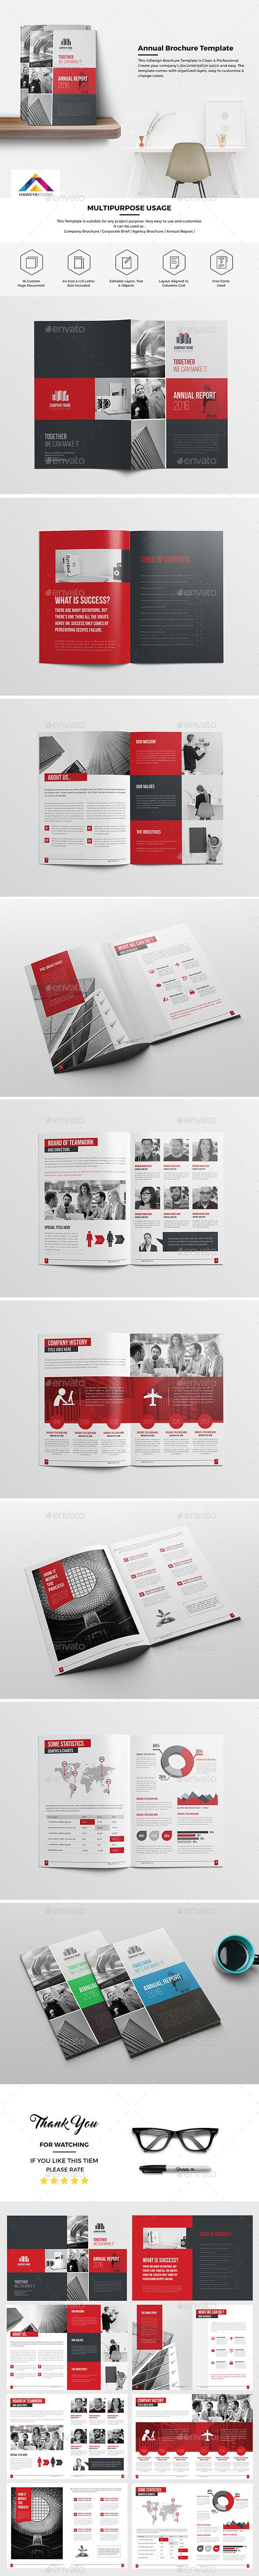 Haweya Annual Report 16 Page Template InDesign INDD. Download here: http://graphicriver.net/item/haweya-annual-report-16-page-/16409465?ref=ksioks